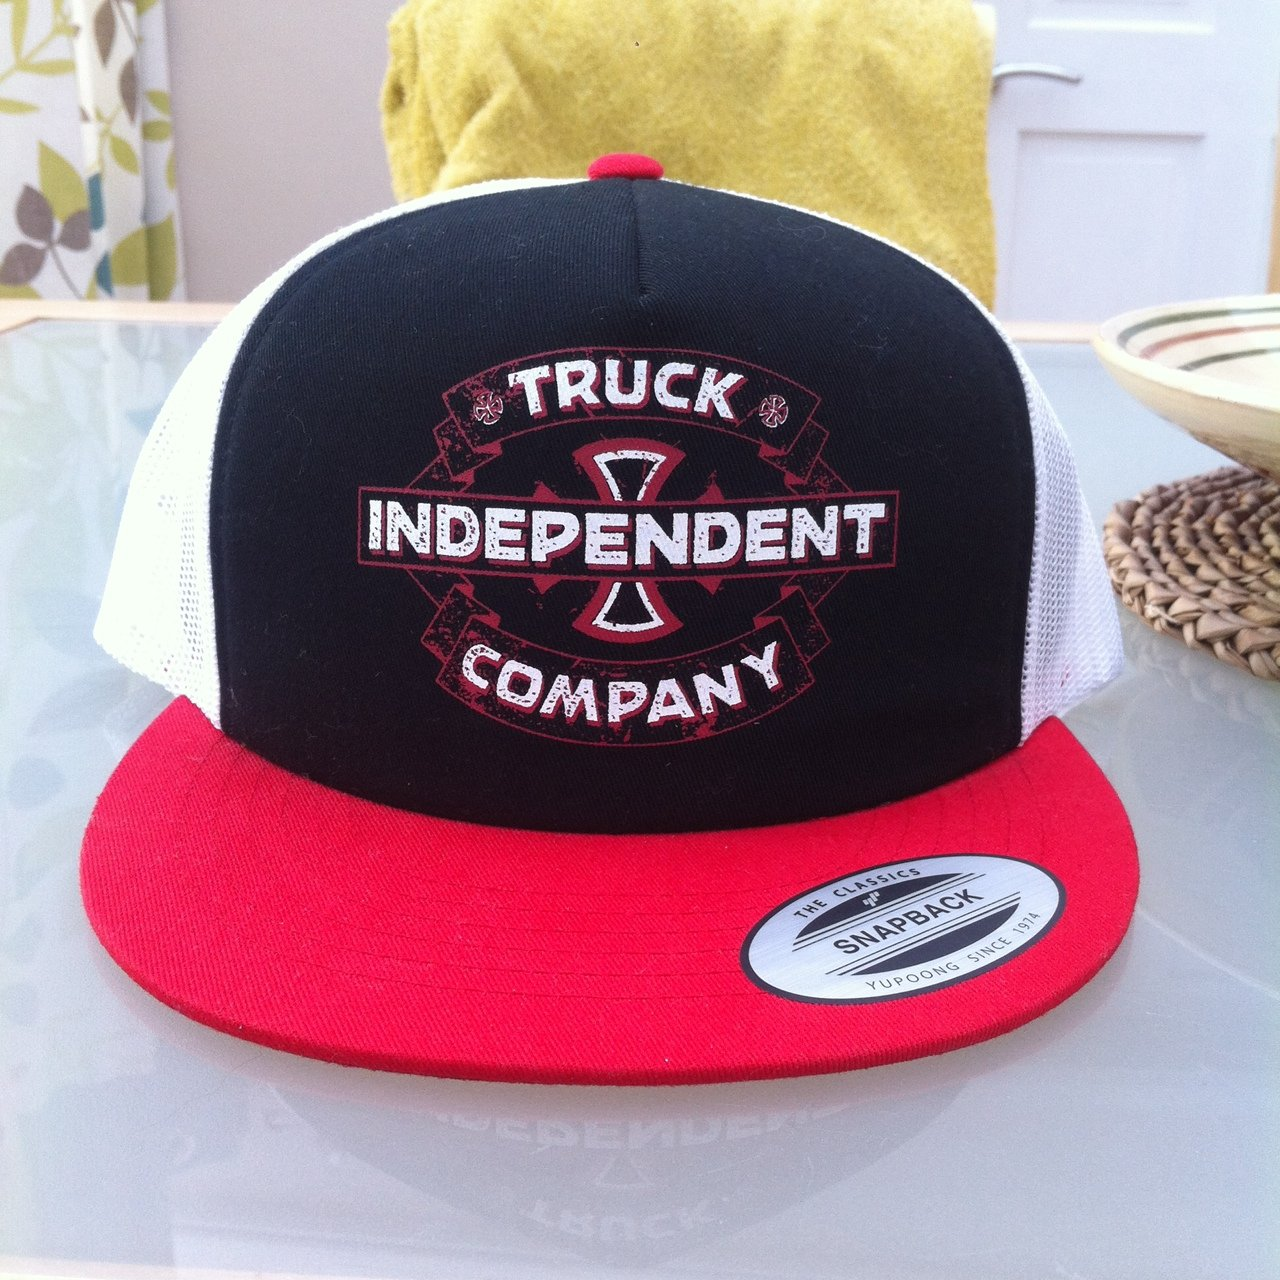 Independant trucker SnapBack hat. Brand new cdcc8f428d5